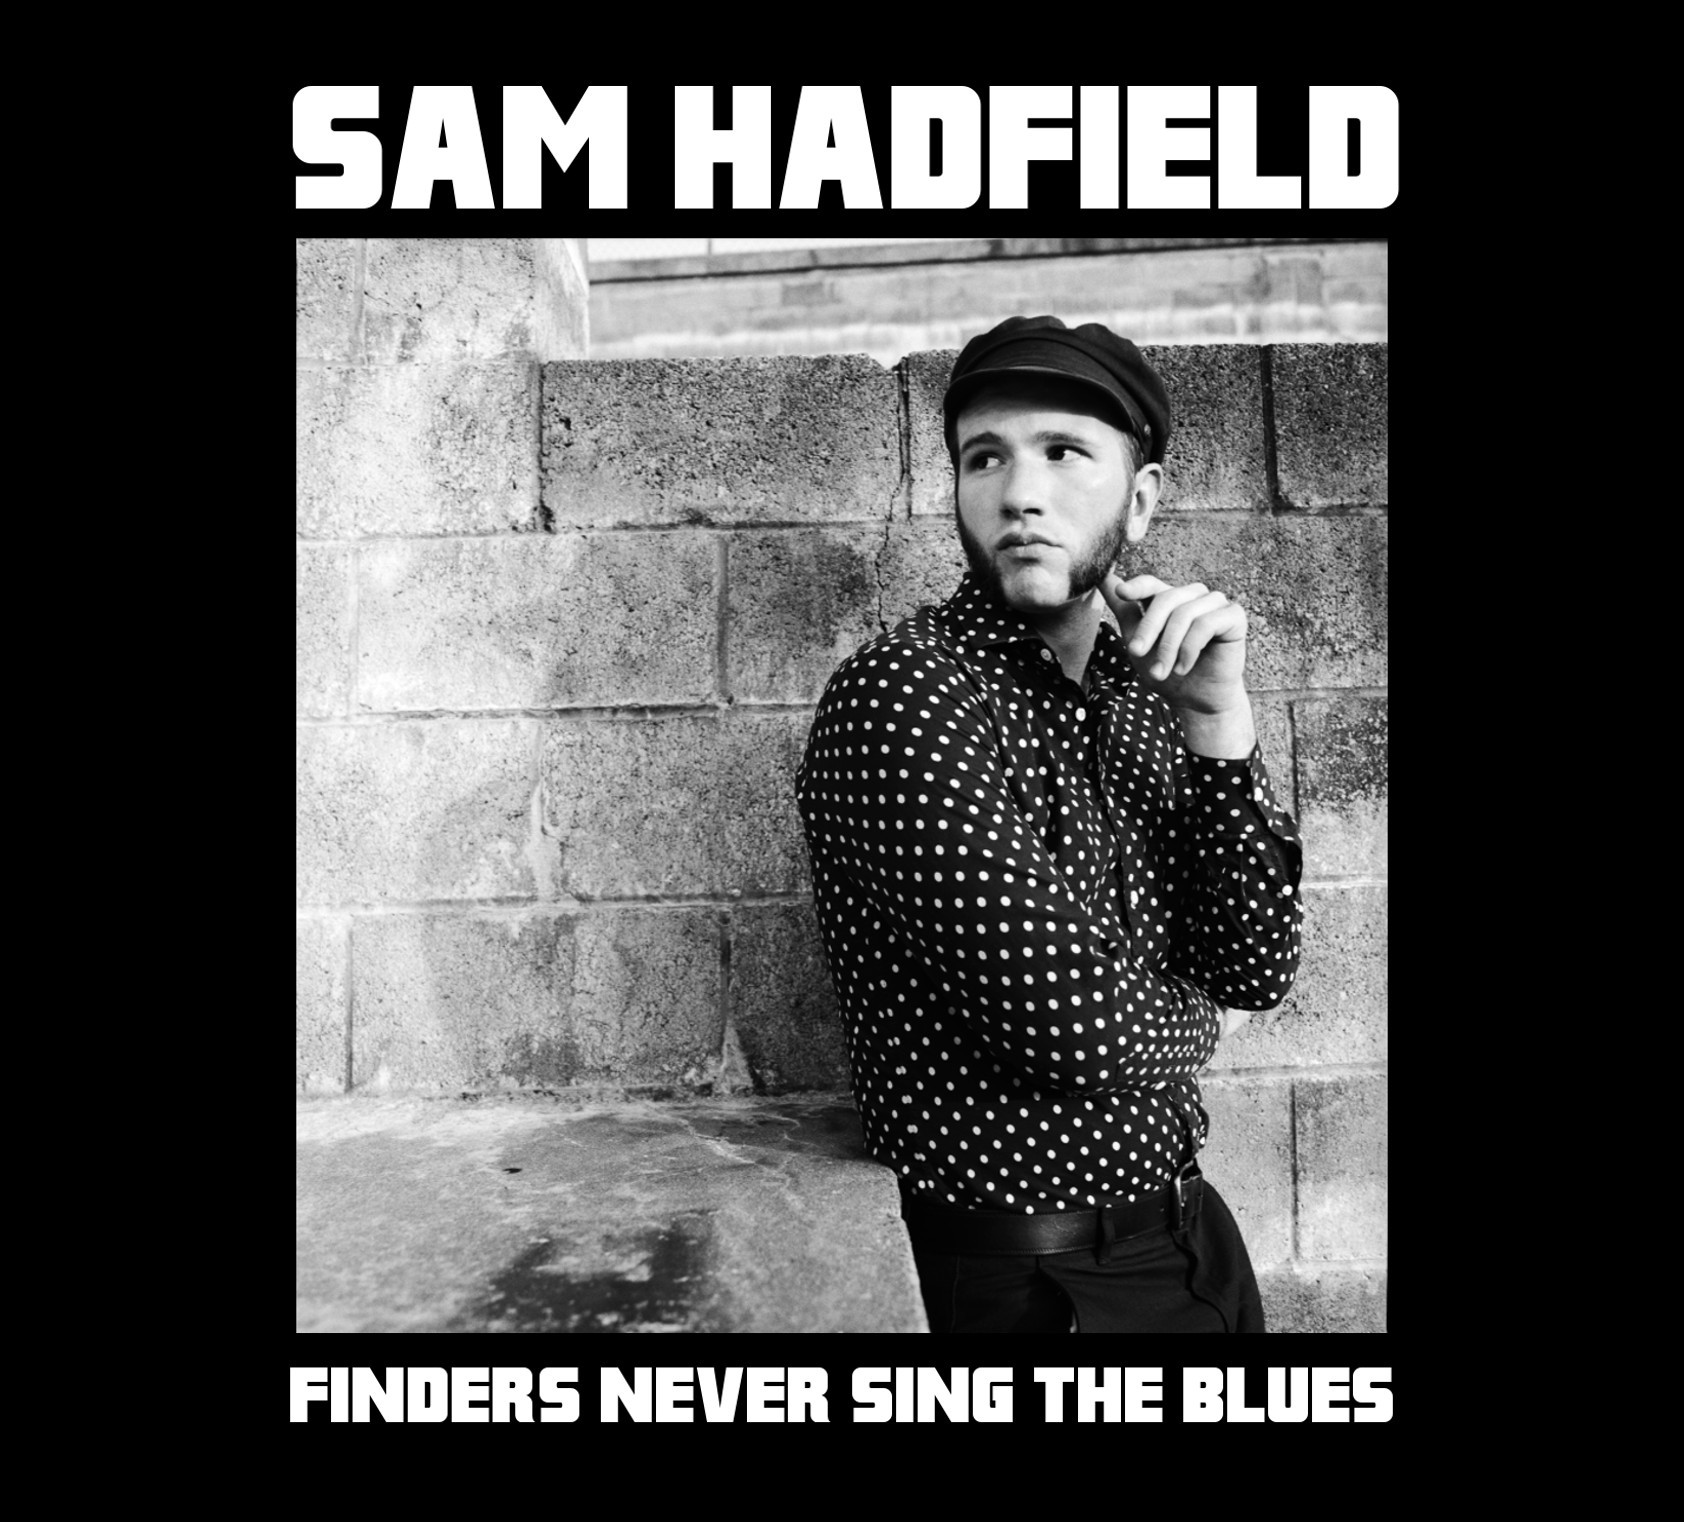 """Thrilled to announce that my new six-song EP, """"Finders Never Sing the Blues"""", will be available on Tuesday, January 9th, 2018! My friends and I have been working hard on this project for quite some time and I can't wait to release it into the wild. Be on the lookout for new show dates, new merch, a new single, and a new video. Check out the new and improved  https://www.samhadfieldmusic.com/ for updates!  Photo by: Laura E. Partain"""